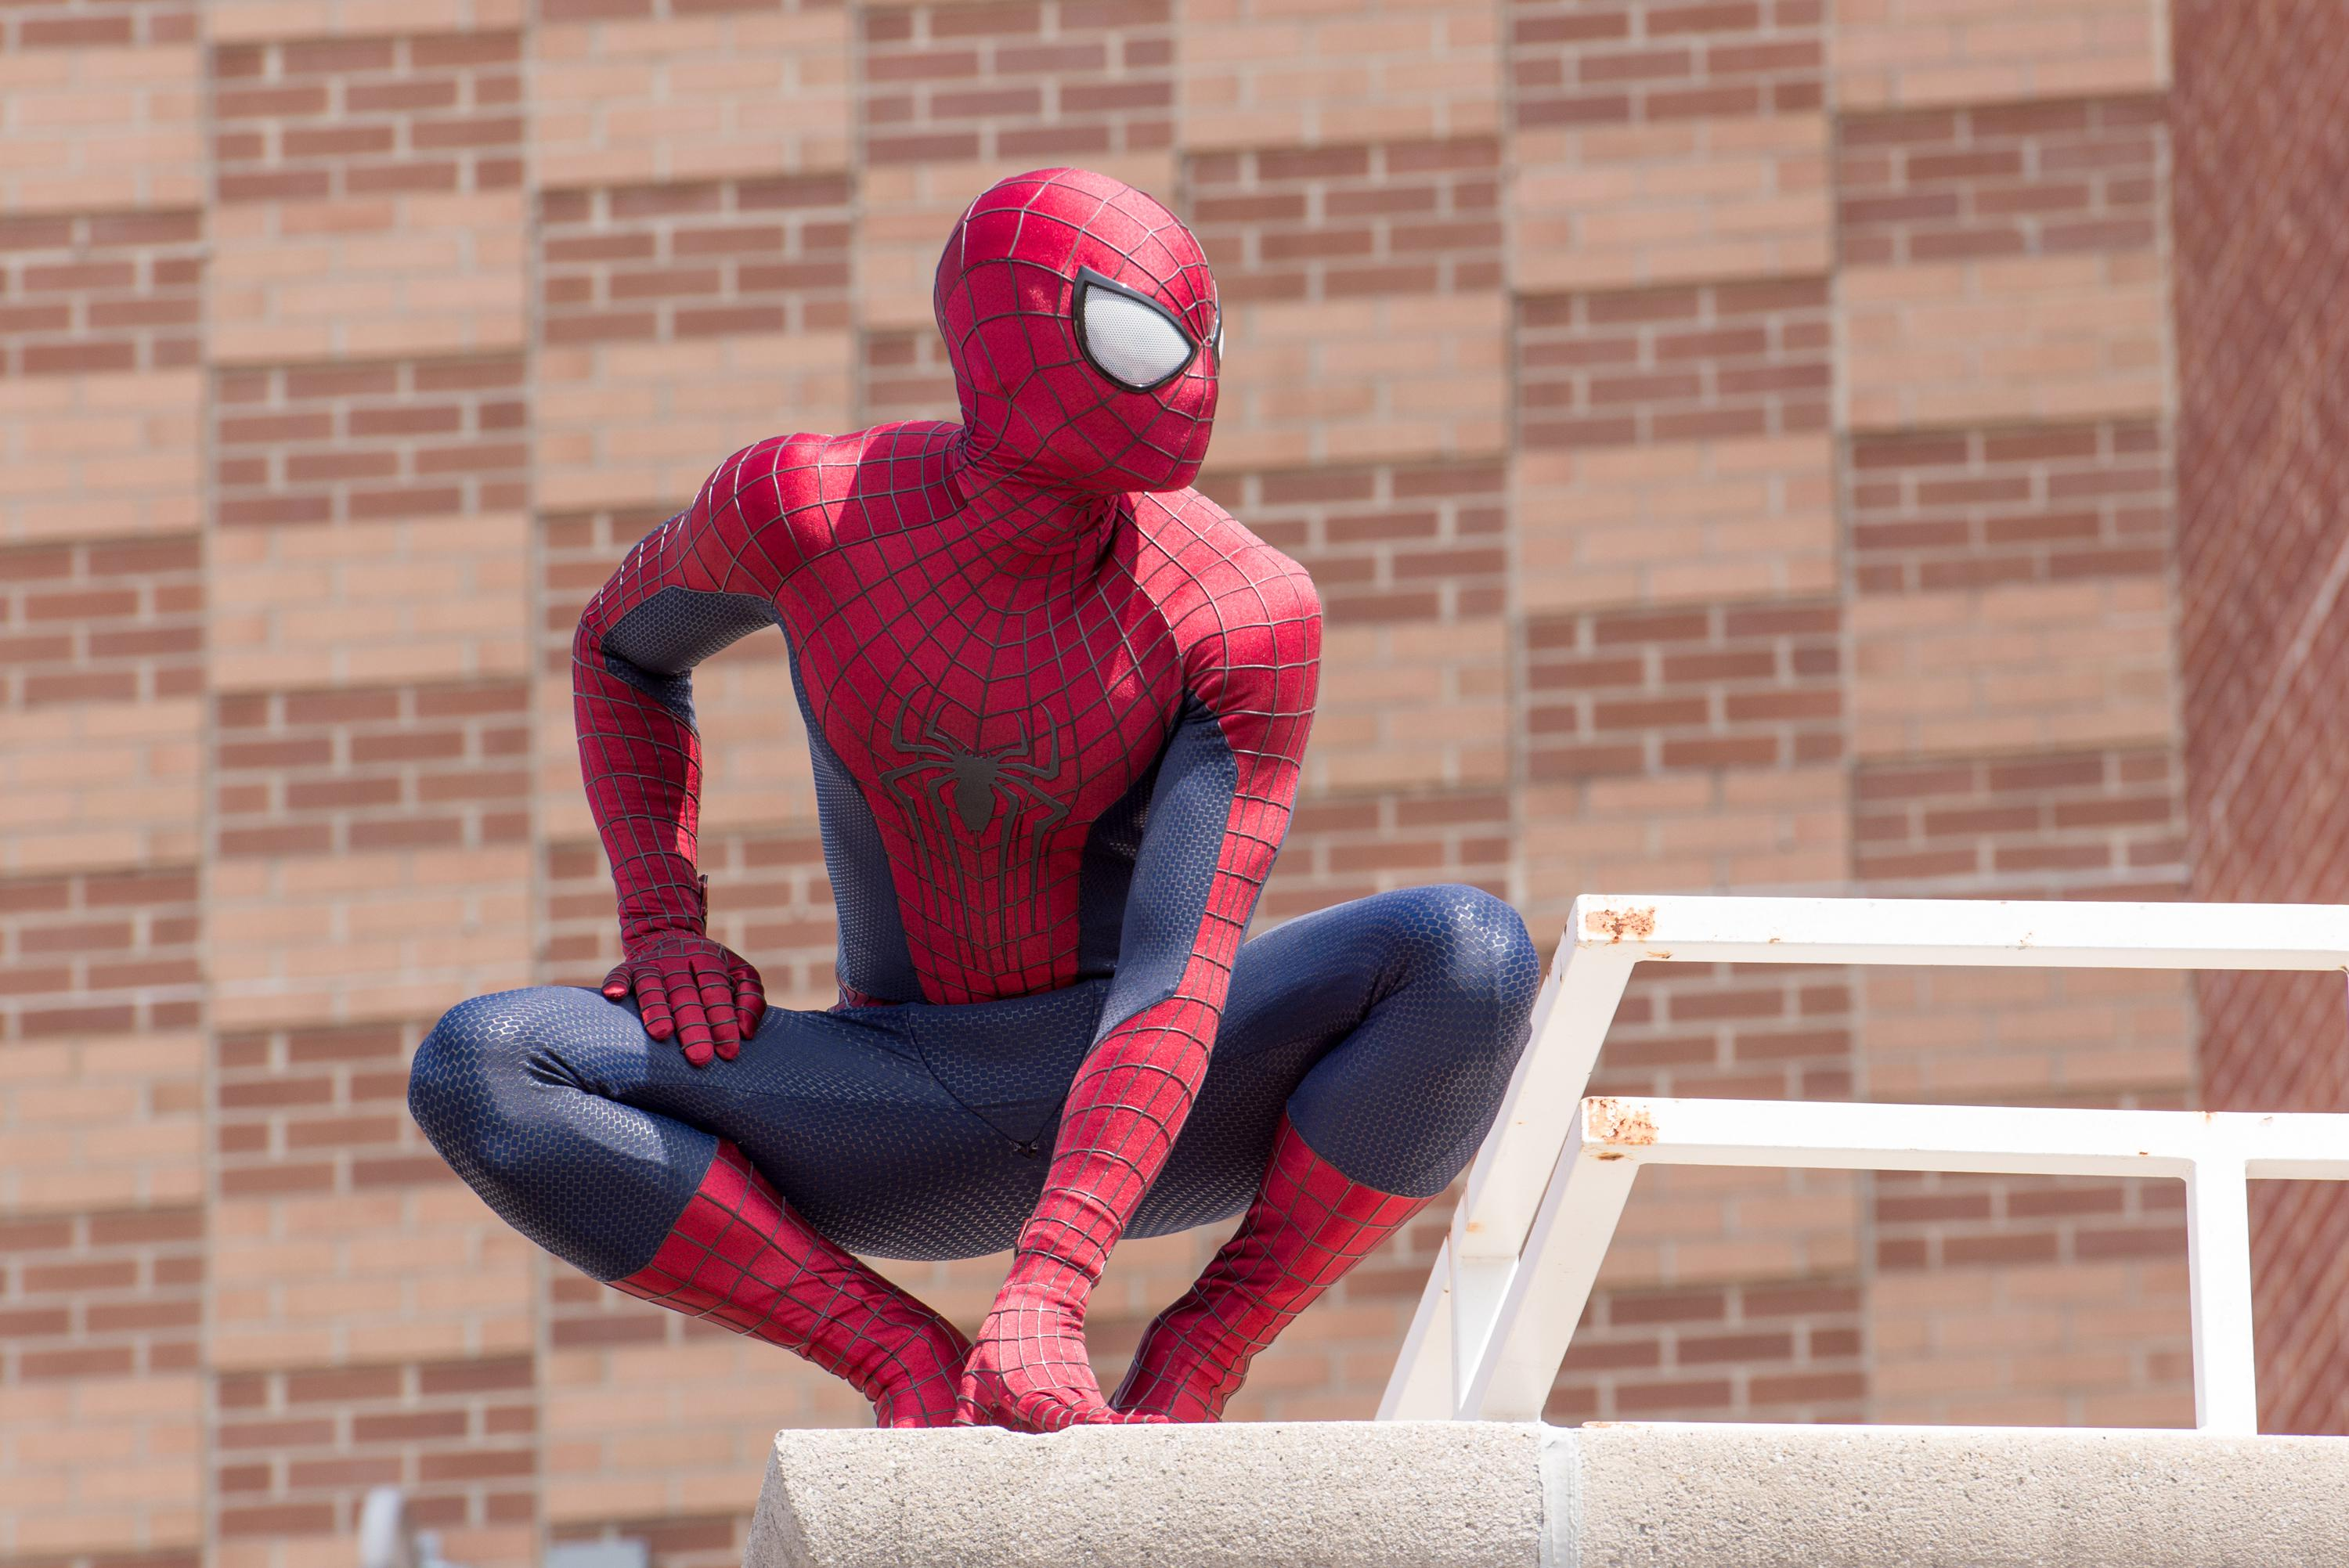 Spider-Man crouched atop a building.